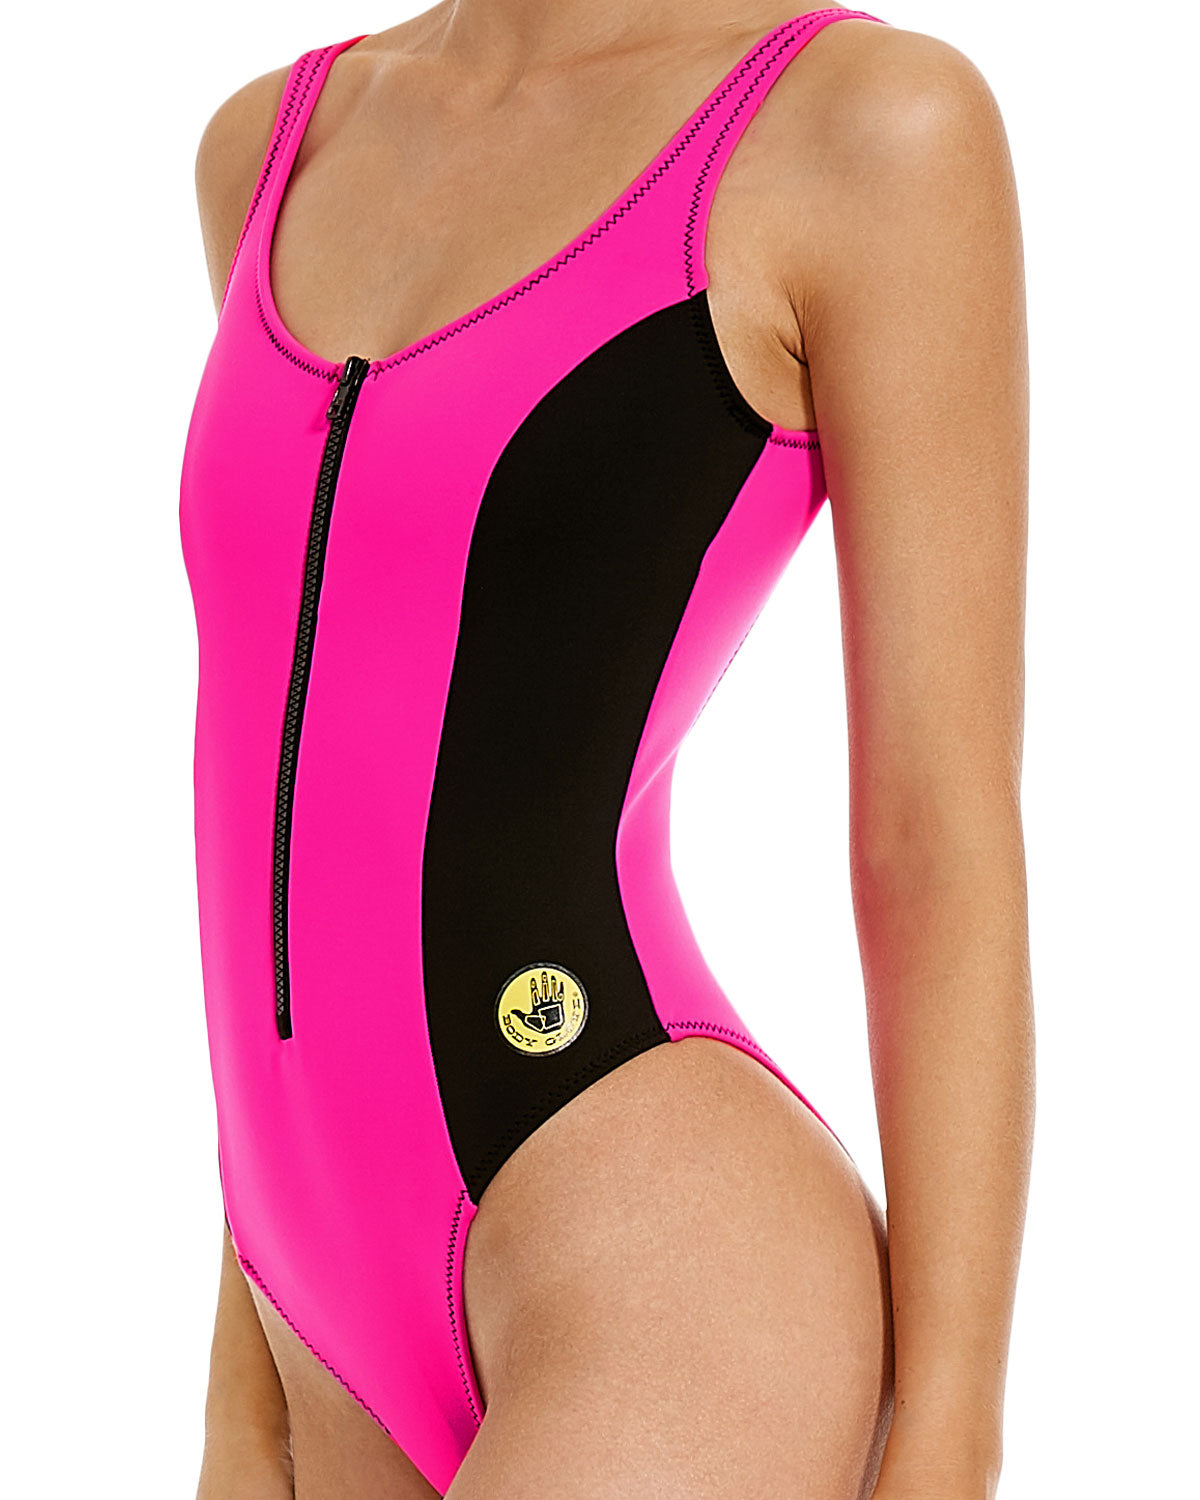 88609aede4486 ... '80s Throwback Time After Time One-Piece Swimsuit - Flamingo Pink. '